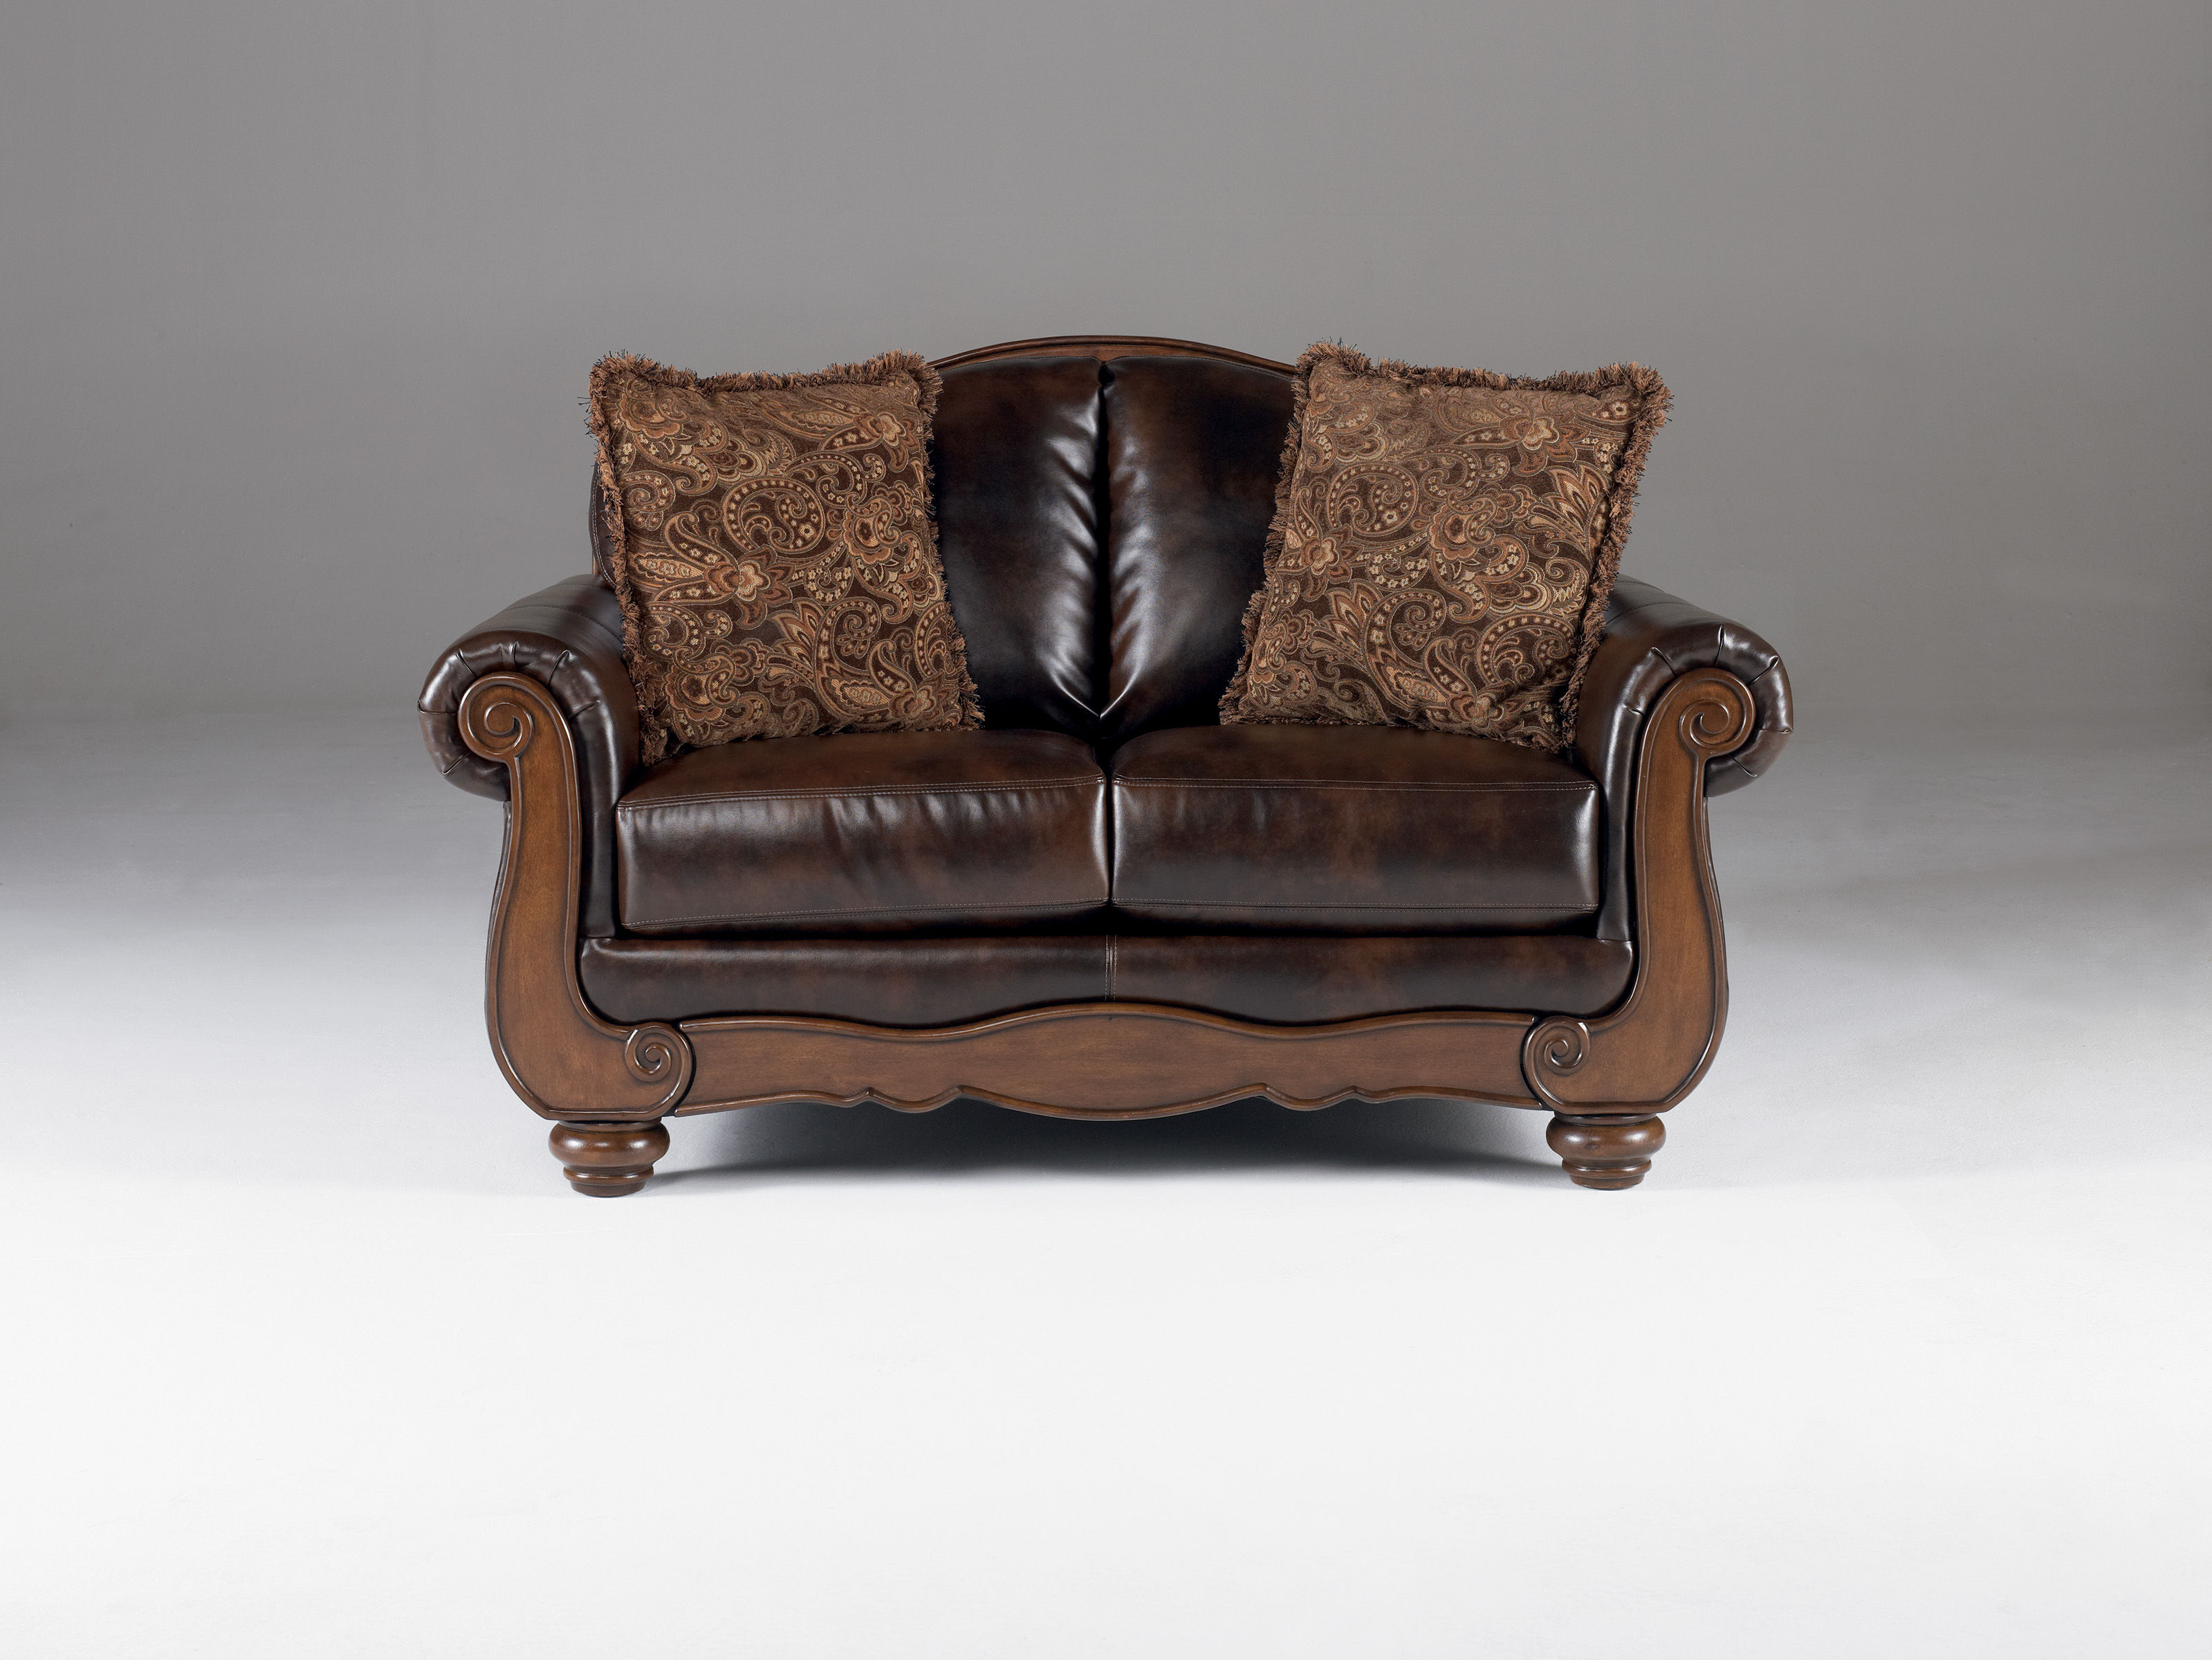 Pleasant Barcelona Traditional Antique Faux Leather Loveseat W Cushion Back Bralicious Painted Fabric Chair Ideas Braliciousco